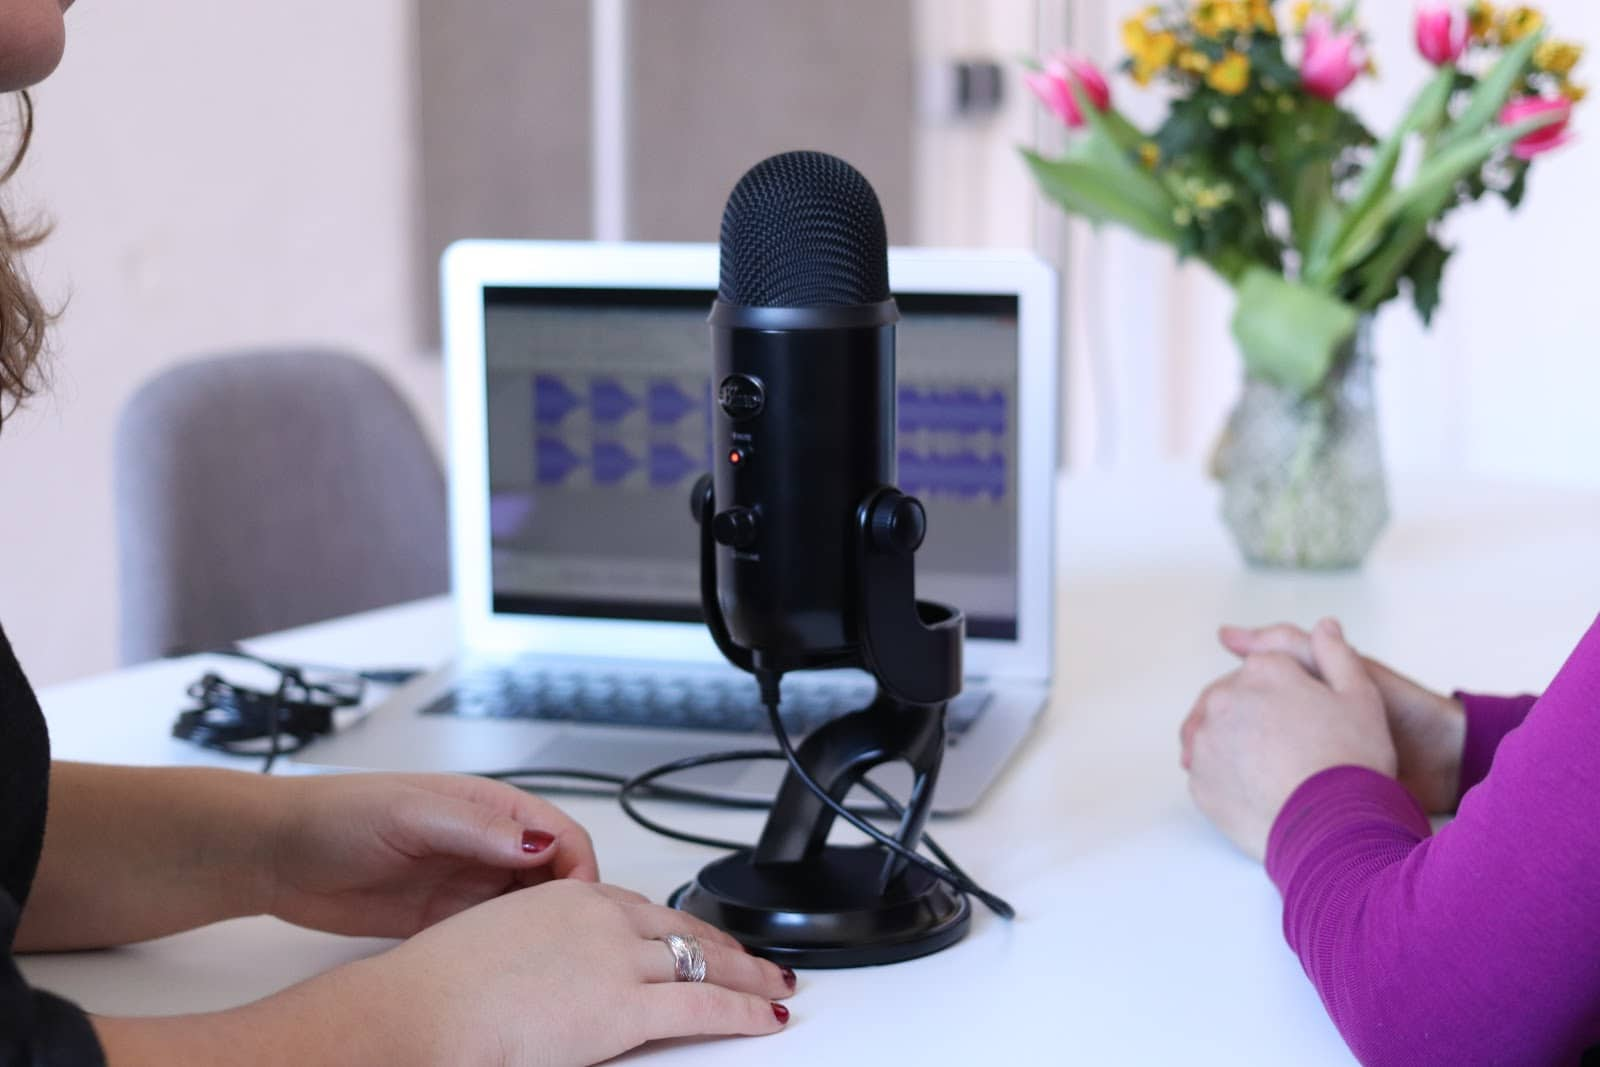 How to become a voice actor: Studio microphone next to a laptop